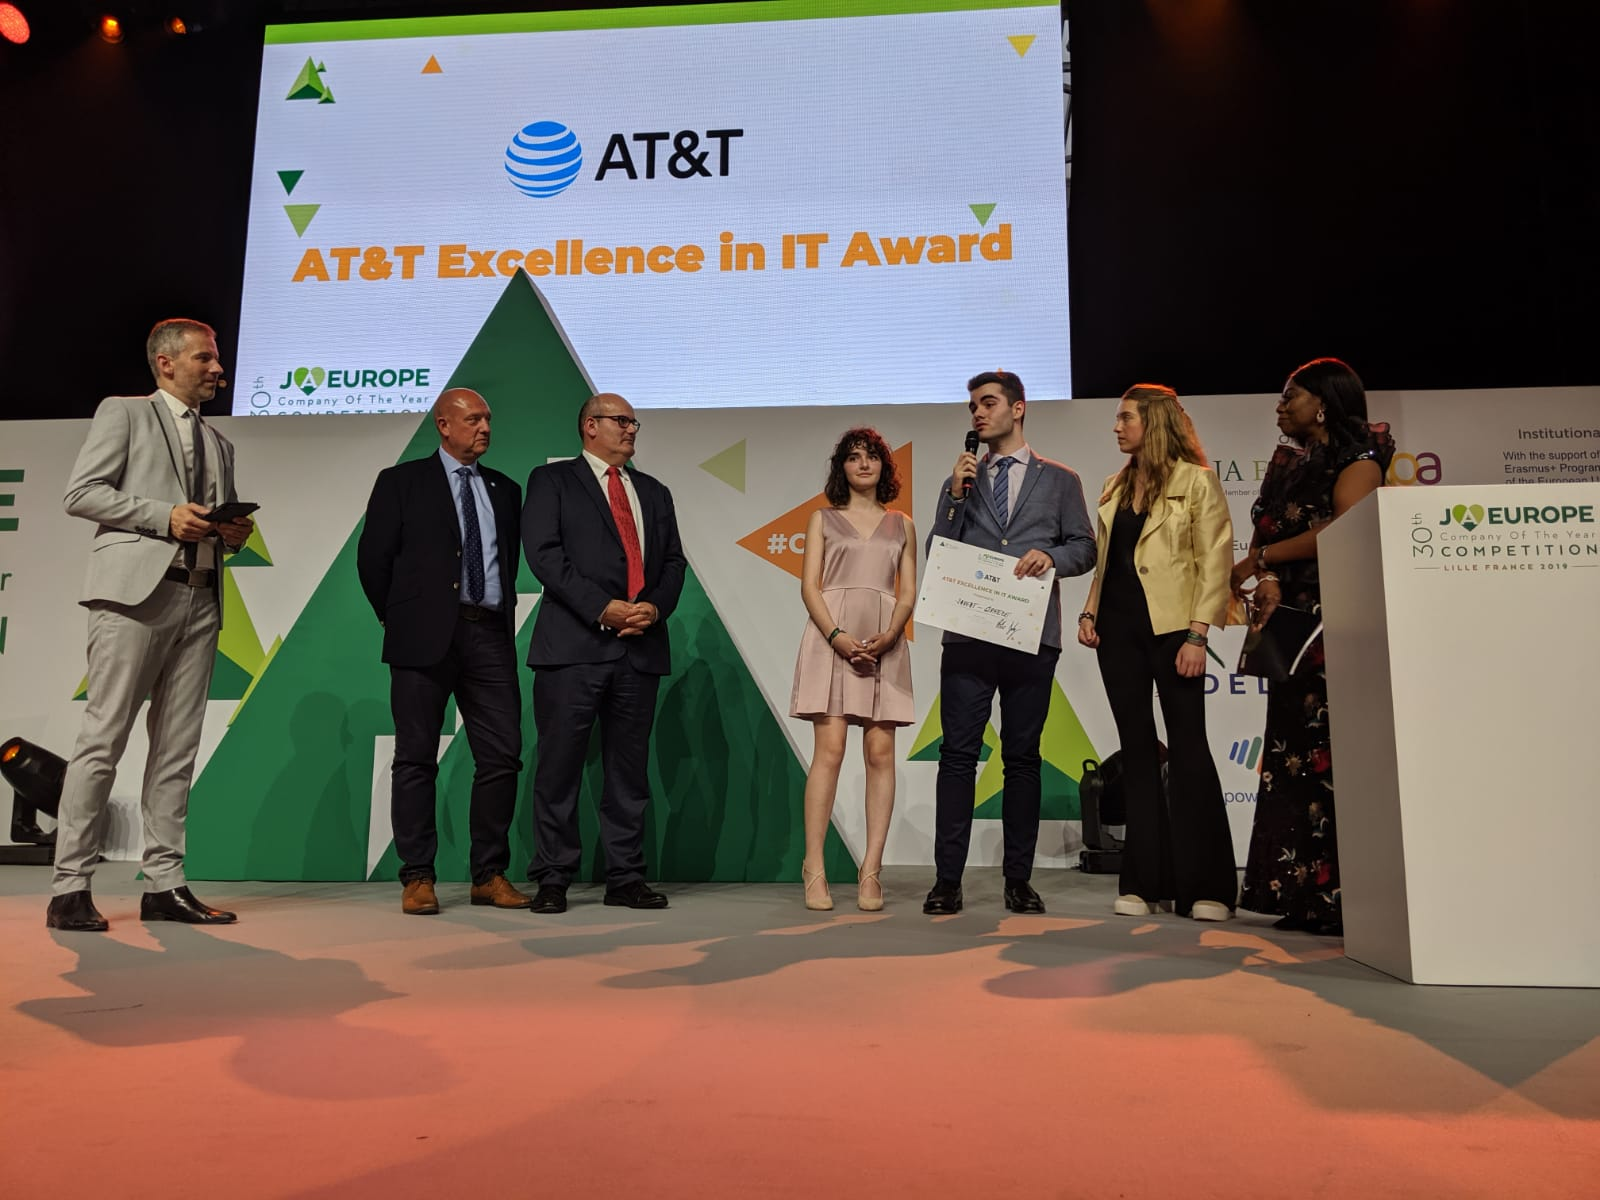 Saveat, winner of the 2019 AT&T Excellence in IT Award.